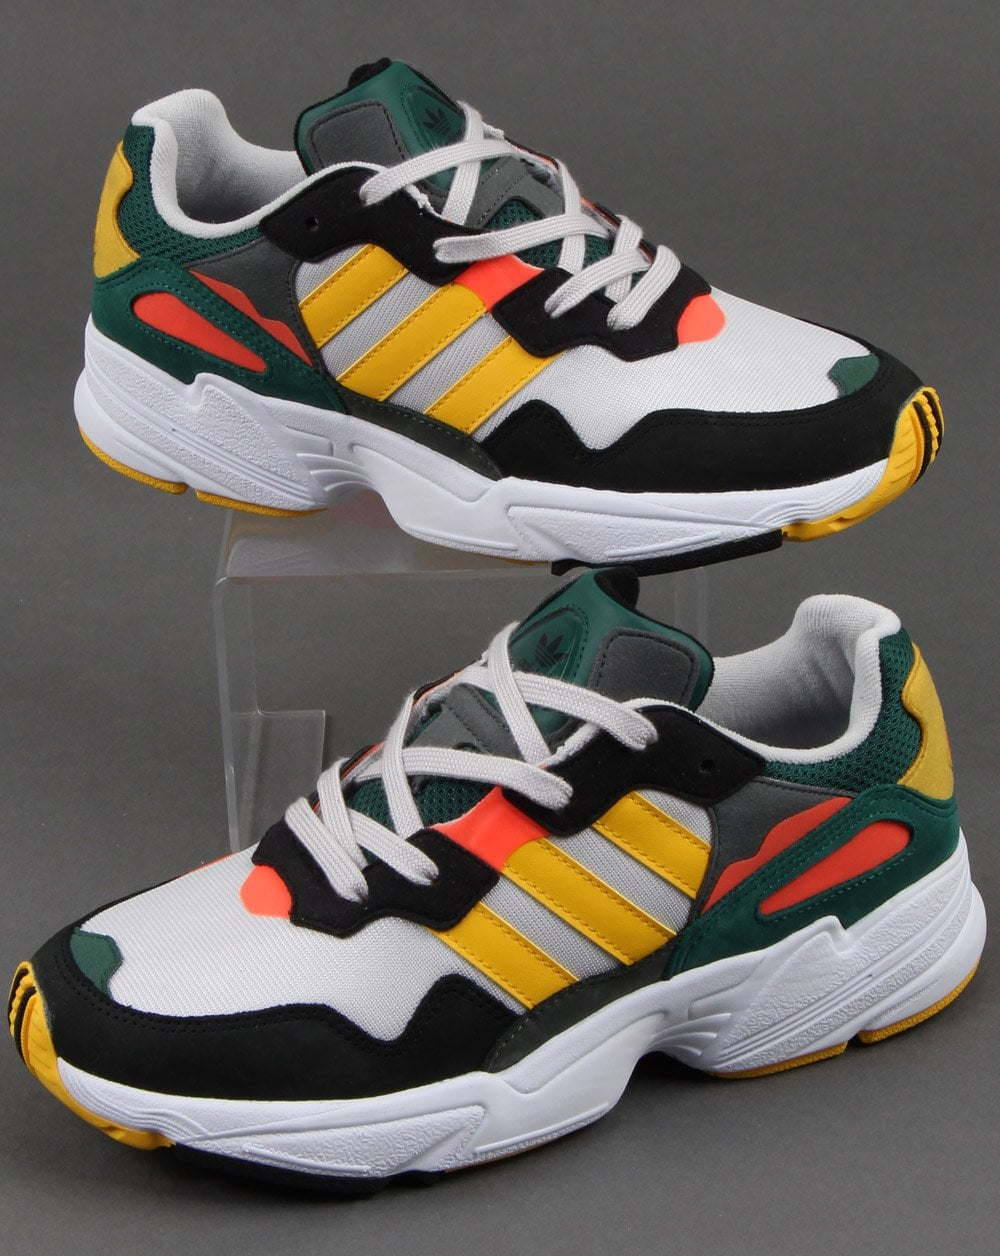 the latest 8191f 66264 adidas Trainers Adidas Yung-96 Trainers Greybold Goldred